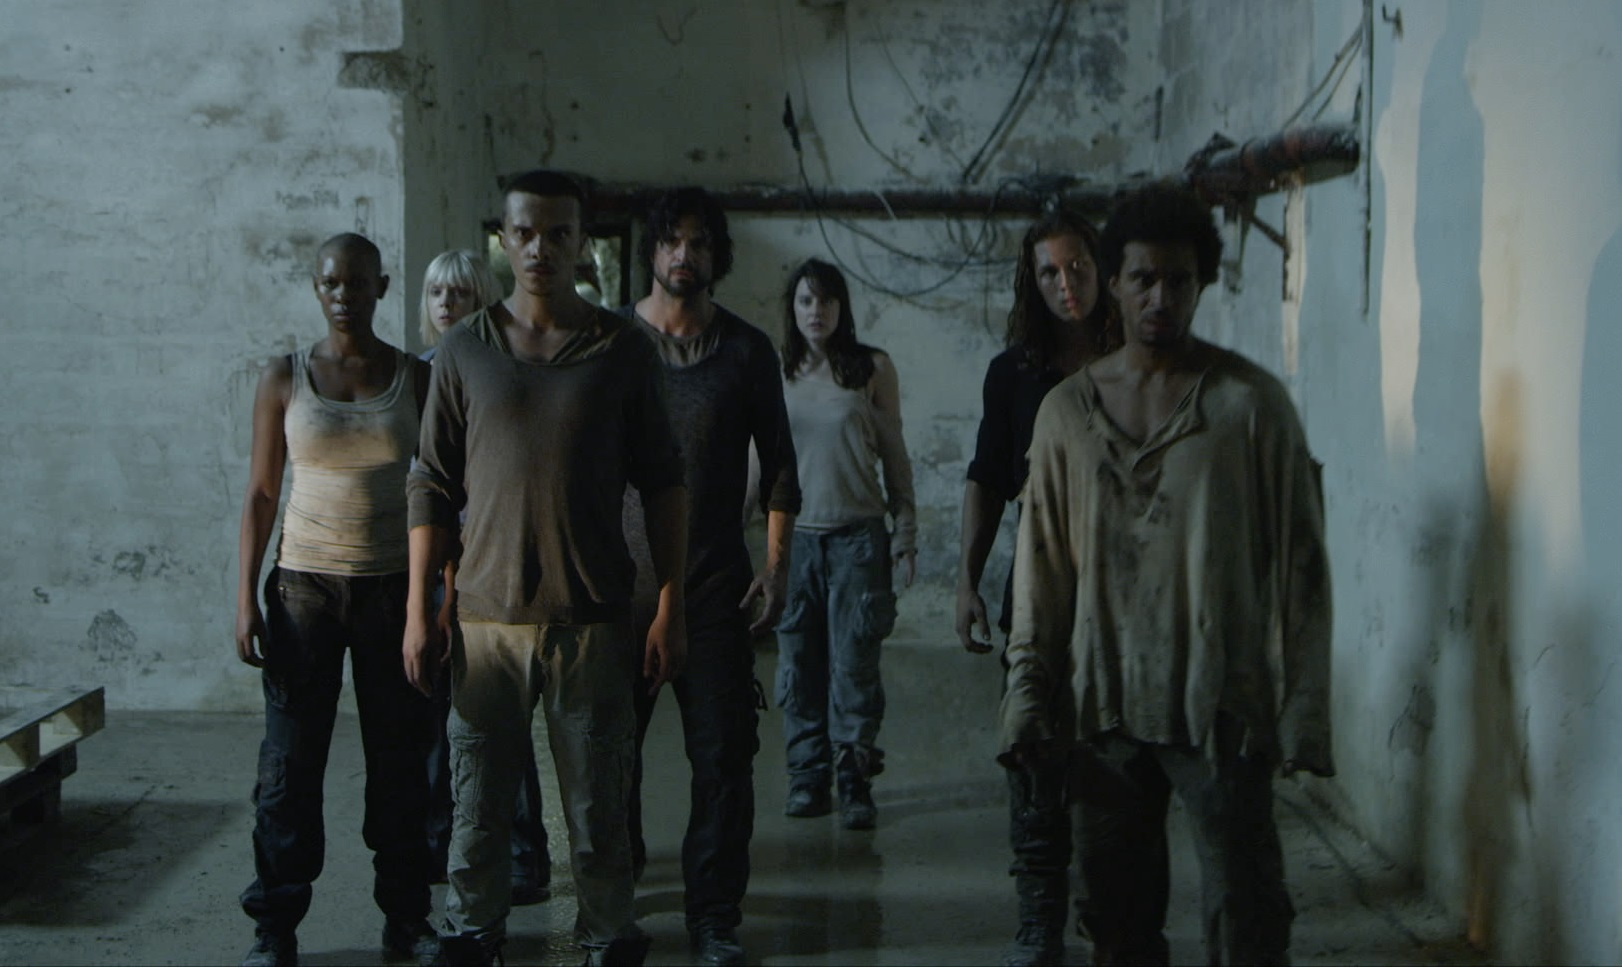 Survivors with no memory trapped in a labyrinth - (l to r) Skin, Antonia Campbell-Hughes, Mauro Conte, Jon Kortajarena, Michelle Ryan, Leo Howard and Alex Martin in Andron (2015)